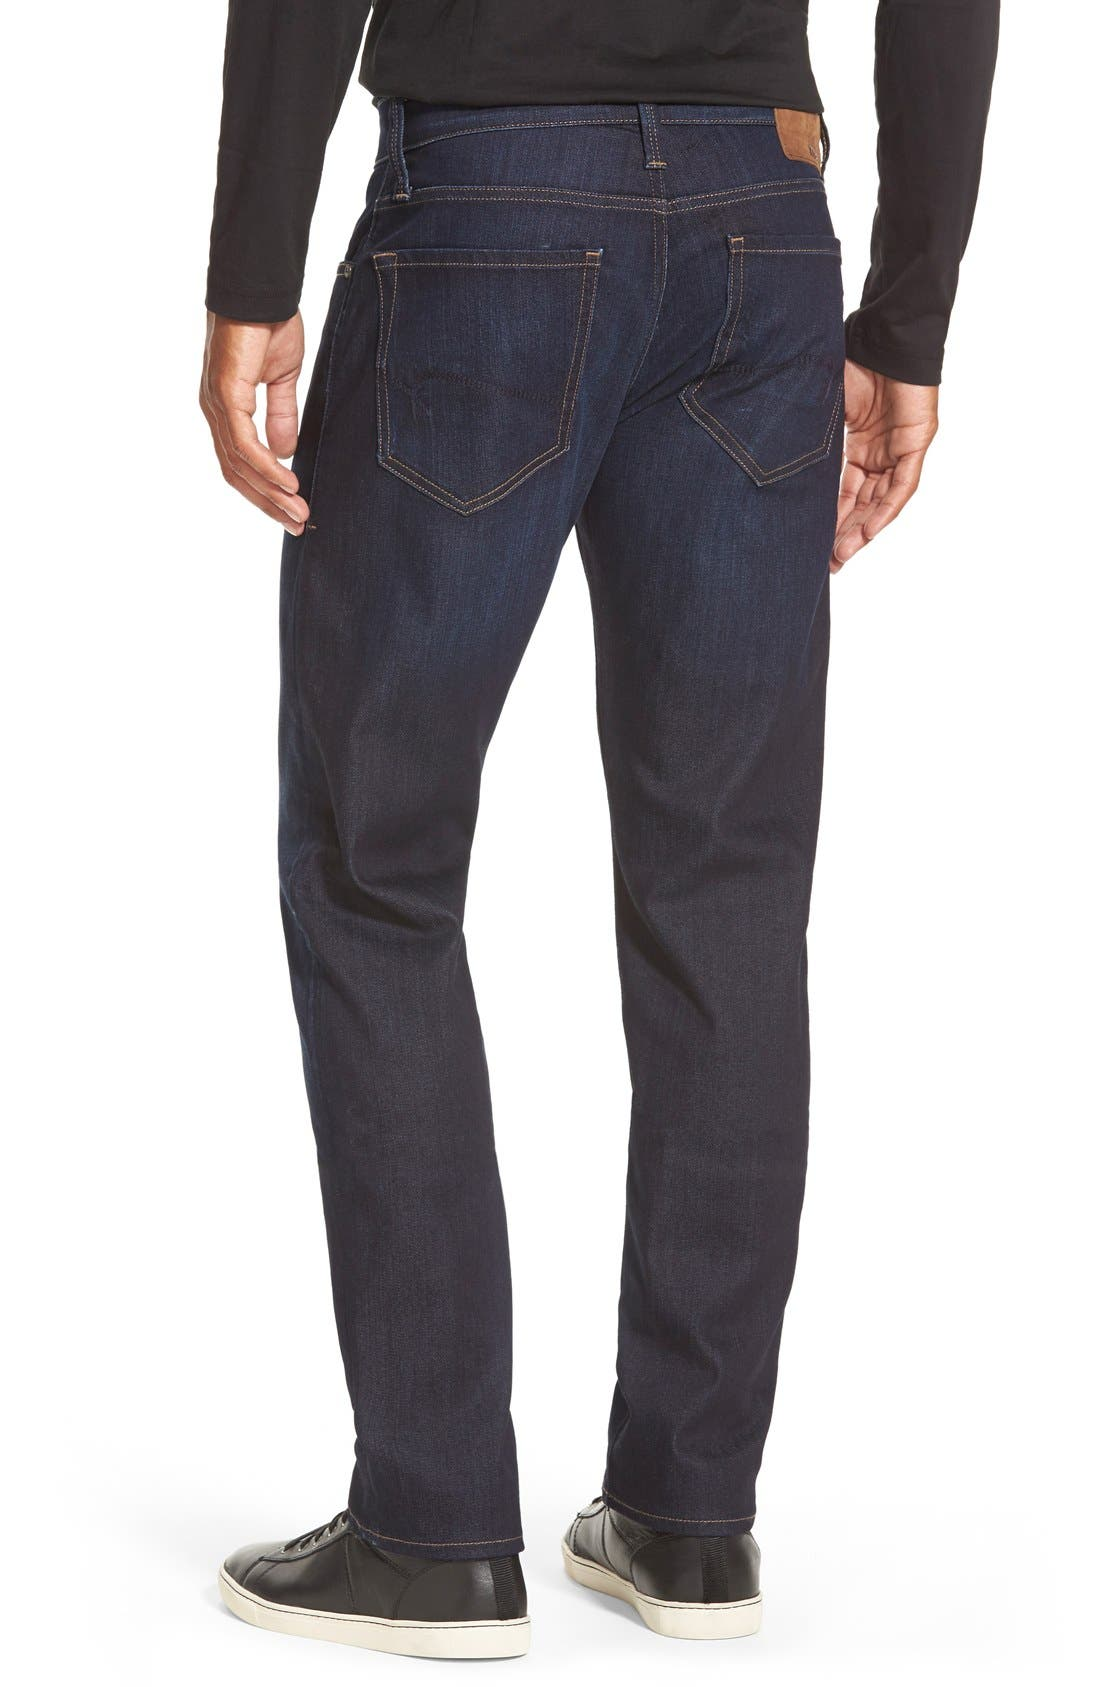 MAVI JEANS,                             'Jake' Skinny Fit Jeans,                             Alternate thumbnail 3, color,                             RINSE BRUSHED WILLIAMSBURG